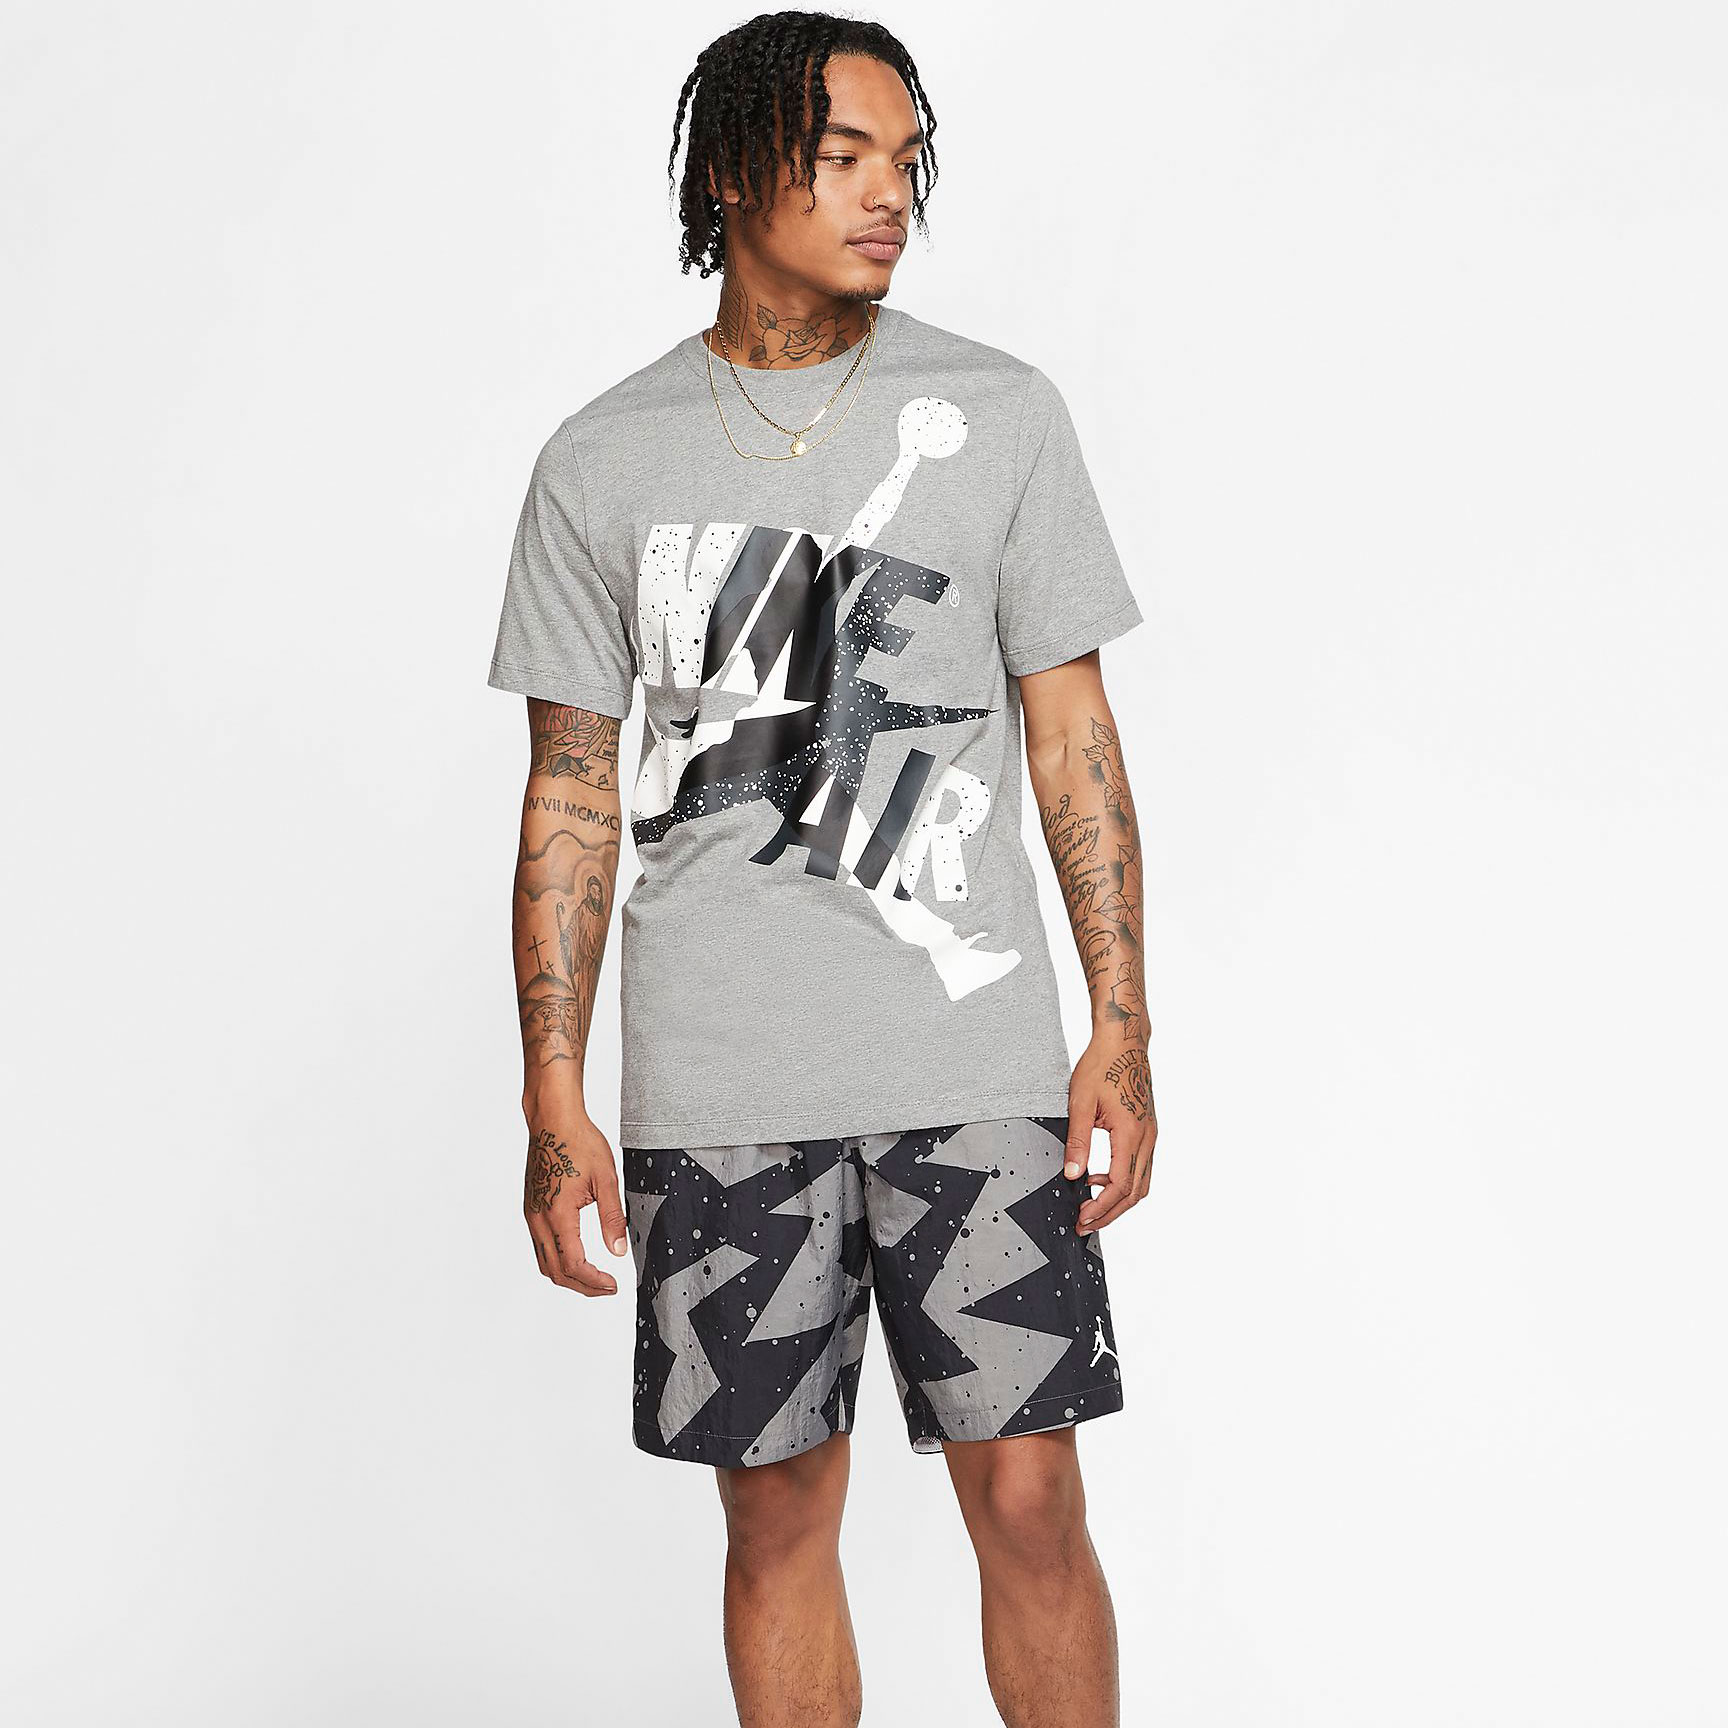 Air Jordan 1 Mid Smoke Grey Shirt Shorts Outfit Sneakerfits Com